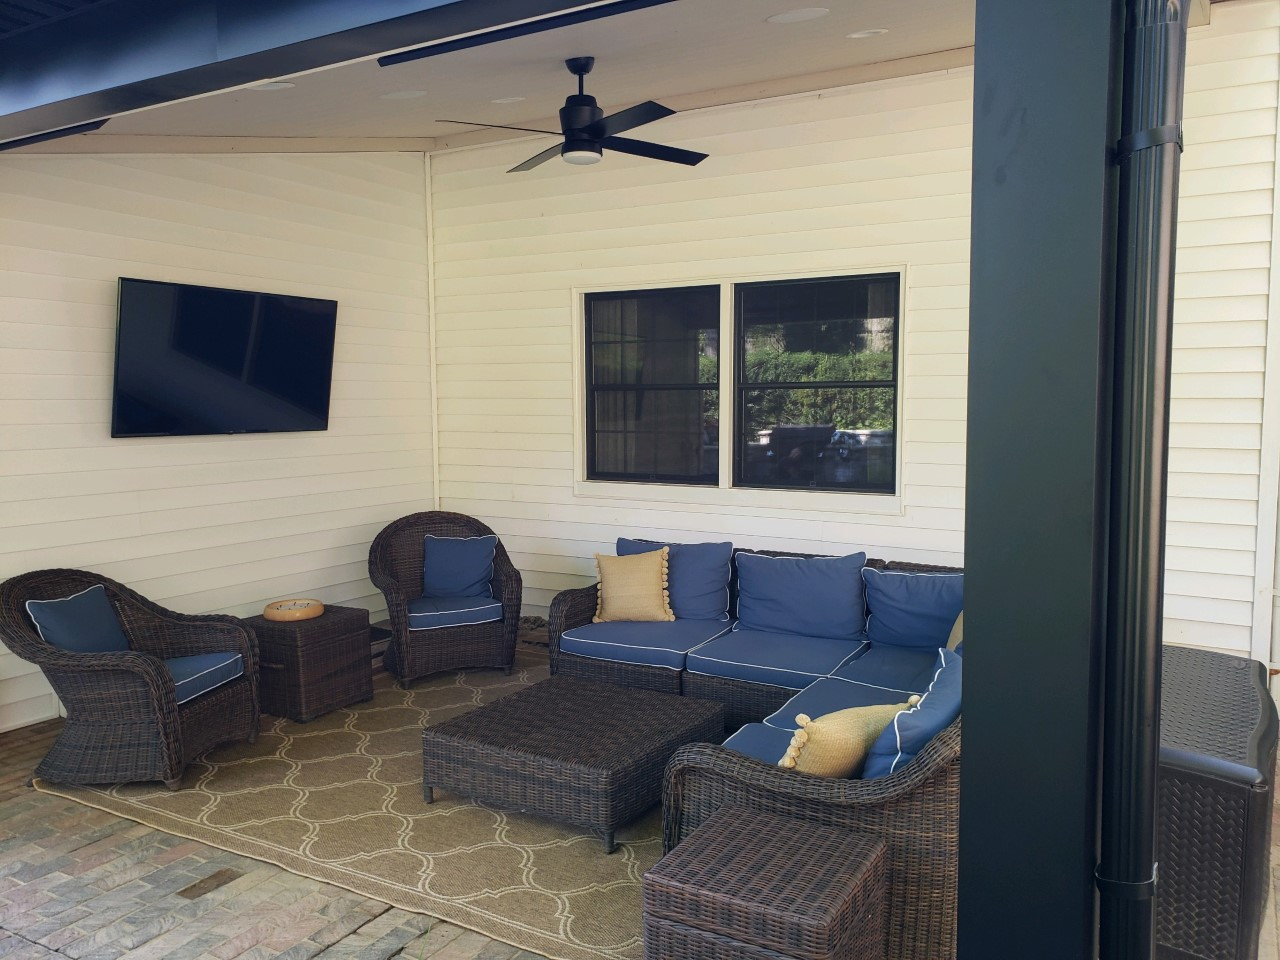 Covered-structures-offer-protection-for-outdoor-furnishings